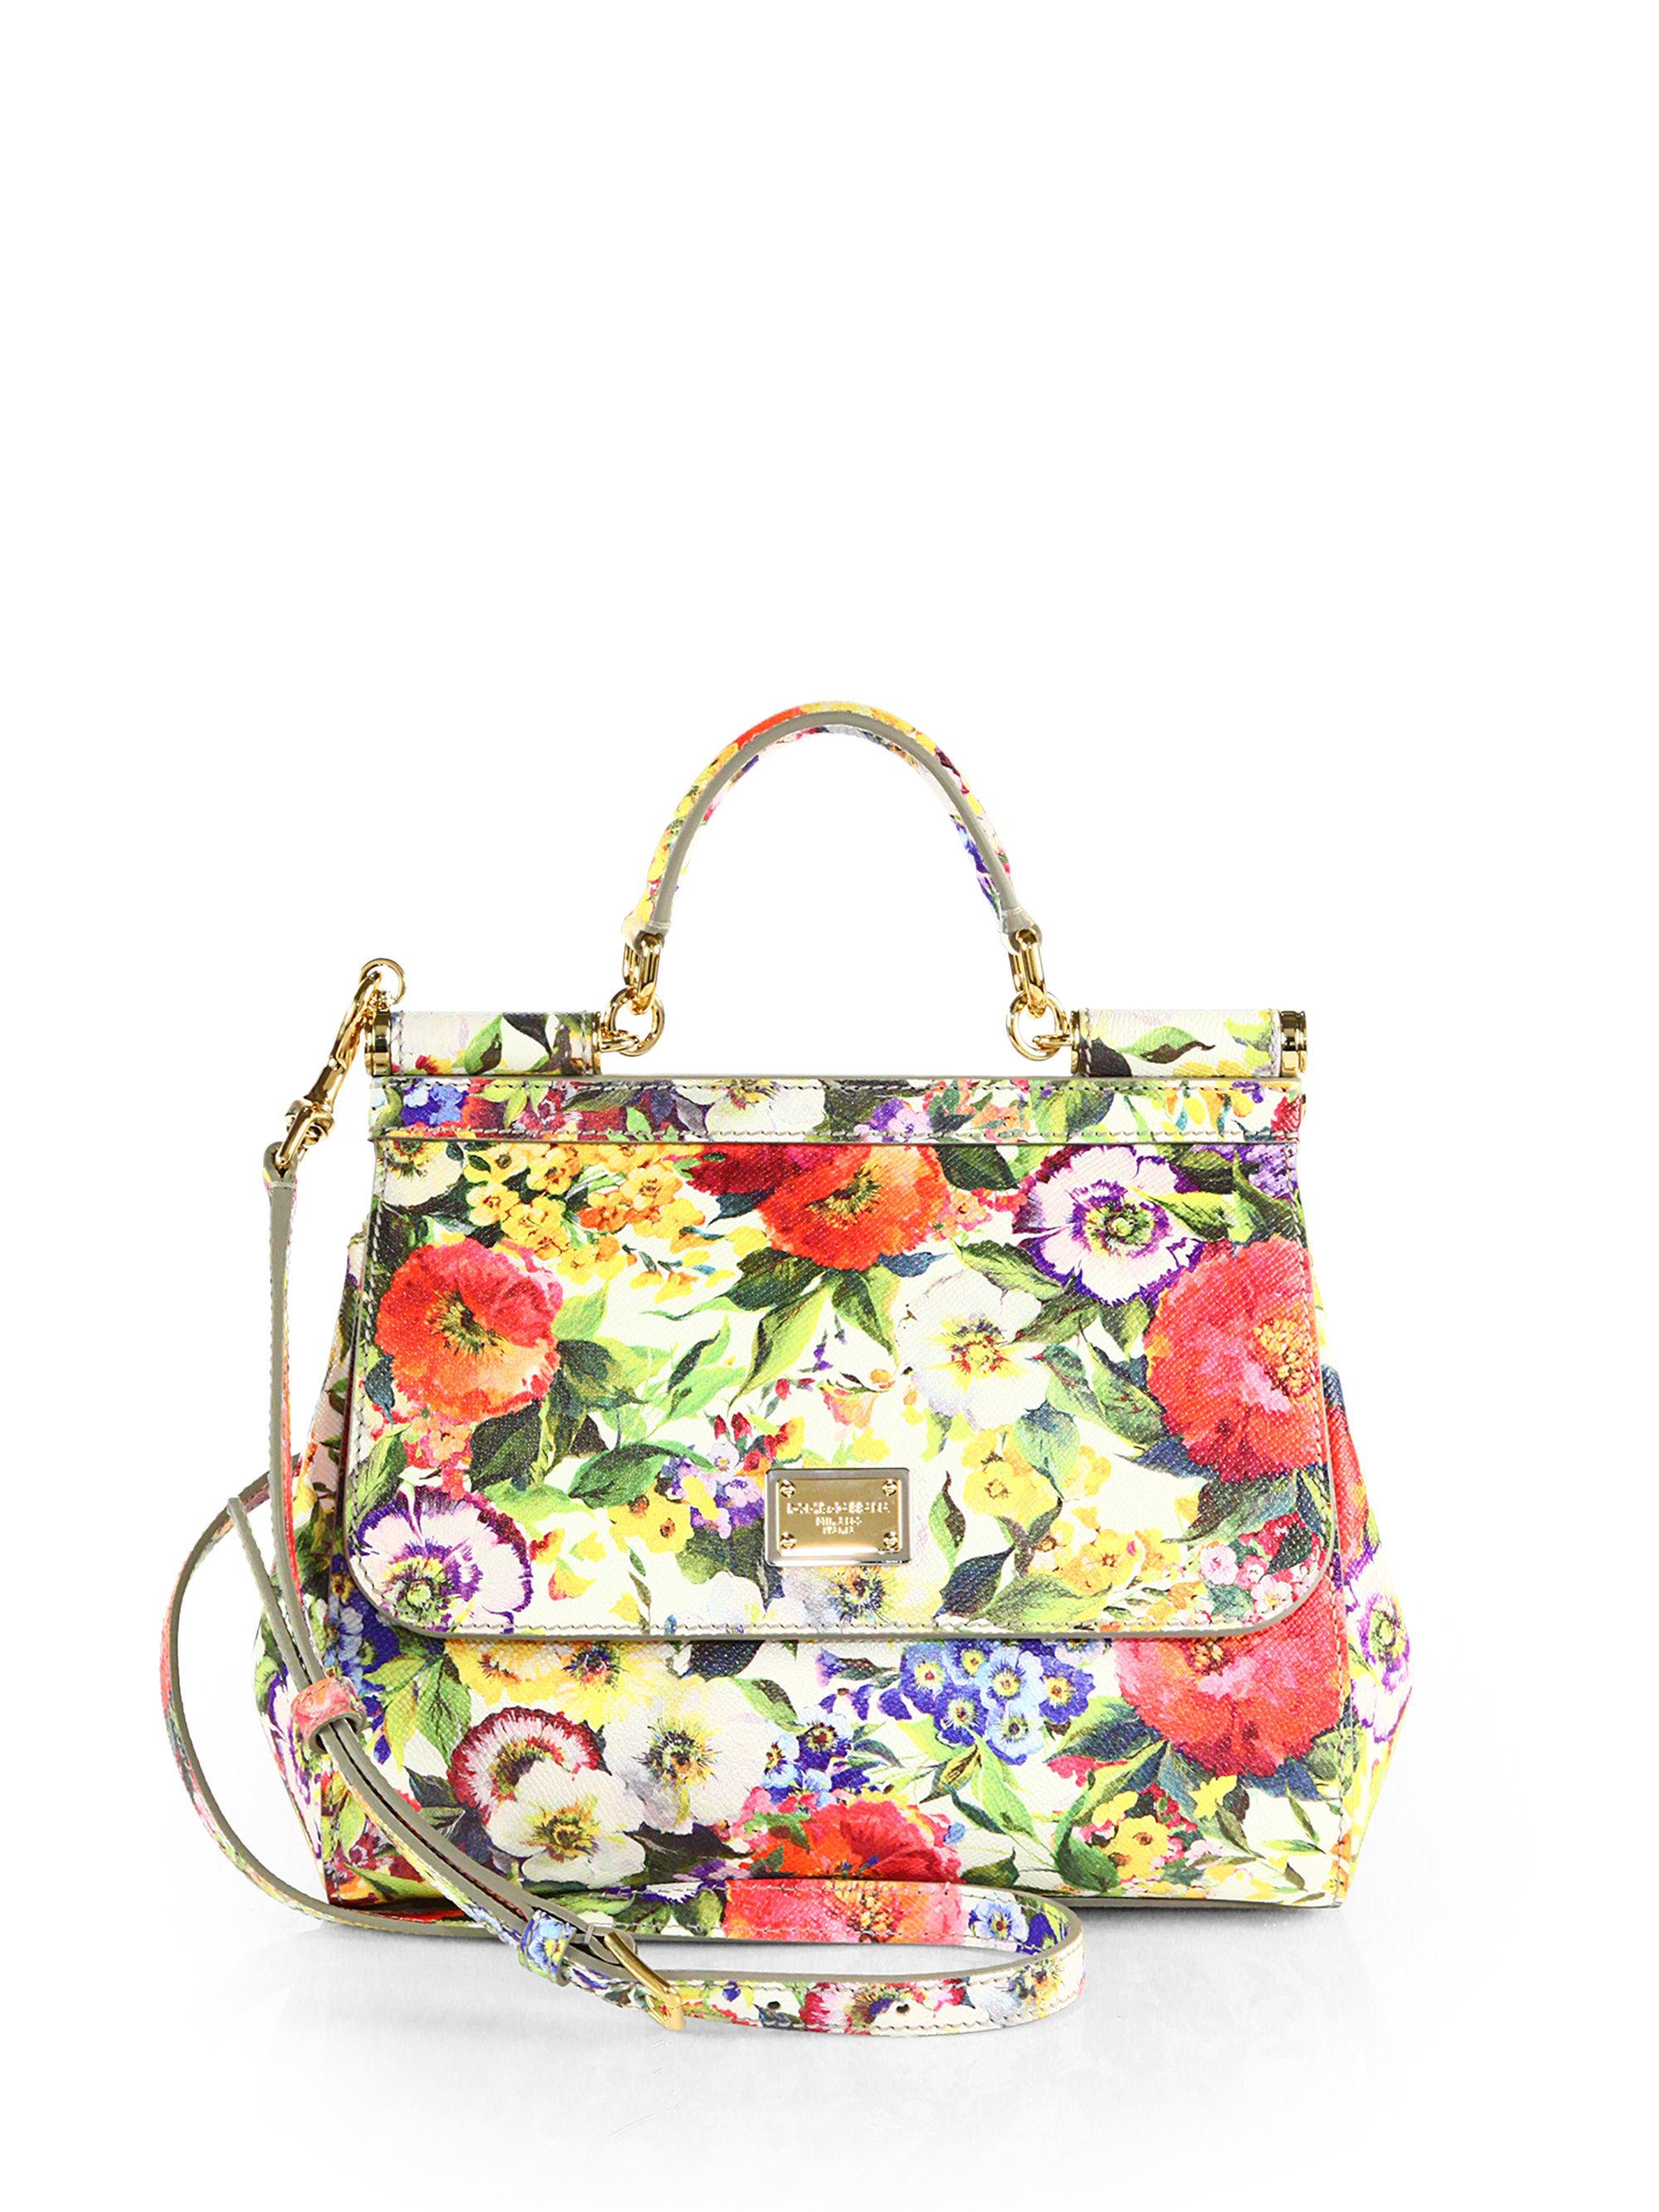 0edfdc133791c Lyst - Dolce   Gabbana Miss Sicily Floral Leather Bag